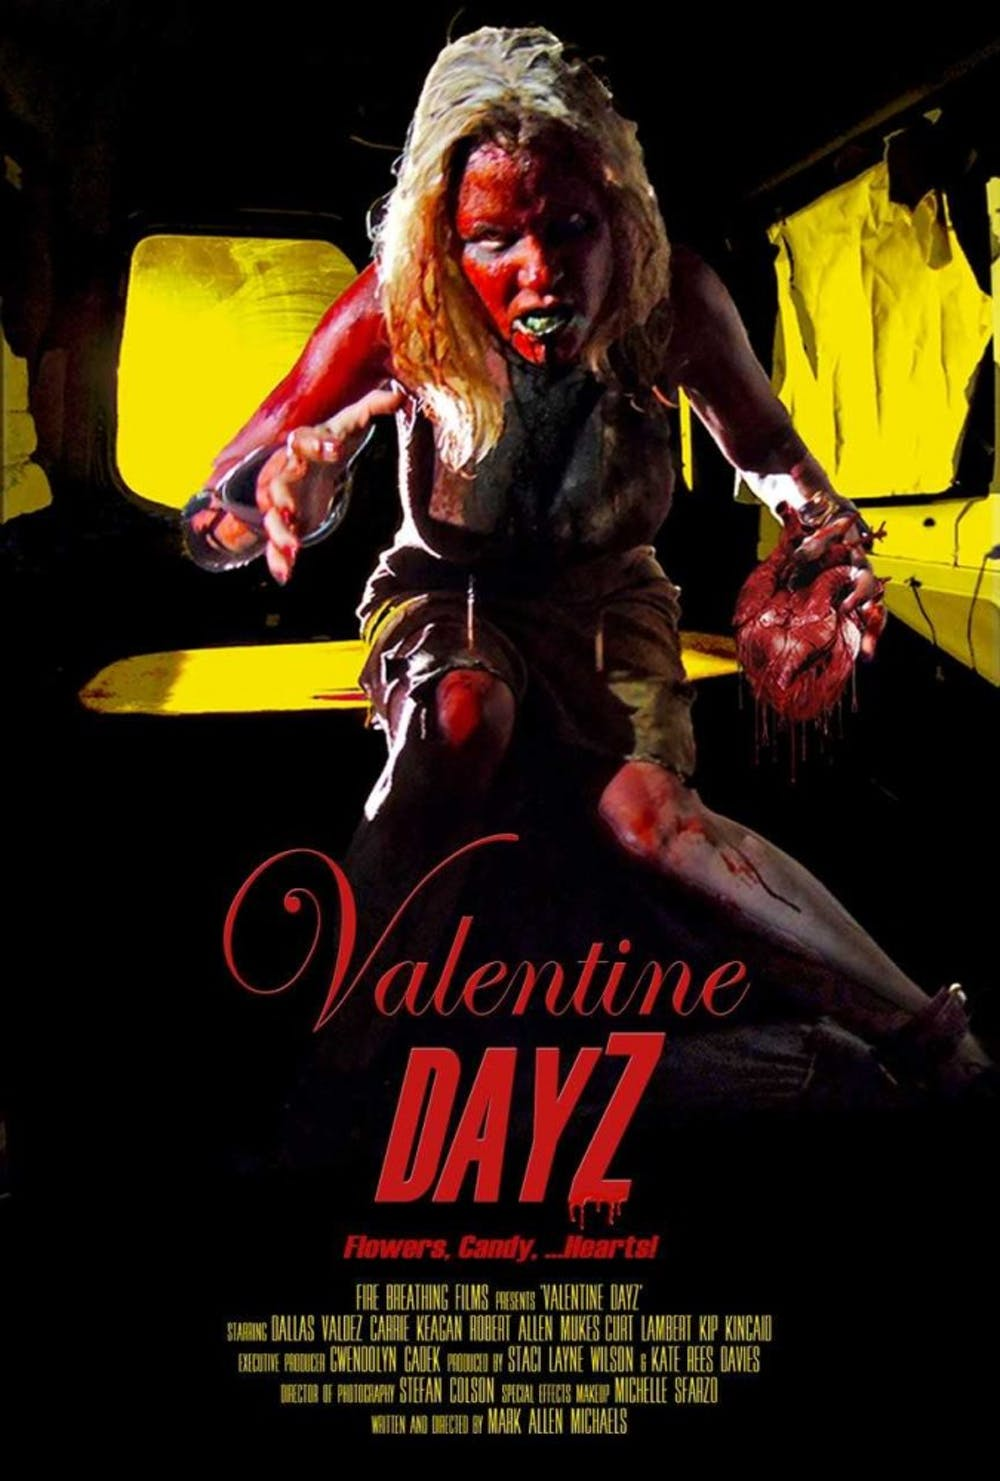 Valentine DayZ is written, directed and acted in by four different Ball State alumni. Robert Acres, Curt Lambert and Ed Morrell all have acting roles, while Mark Allen Michaels writes, directs and acts as Dallas Valdez. Mark Allen Michaels,Photo Provided